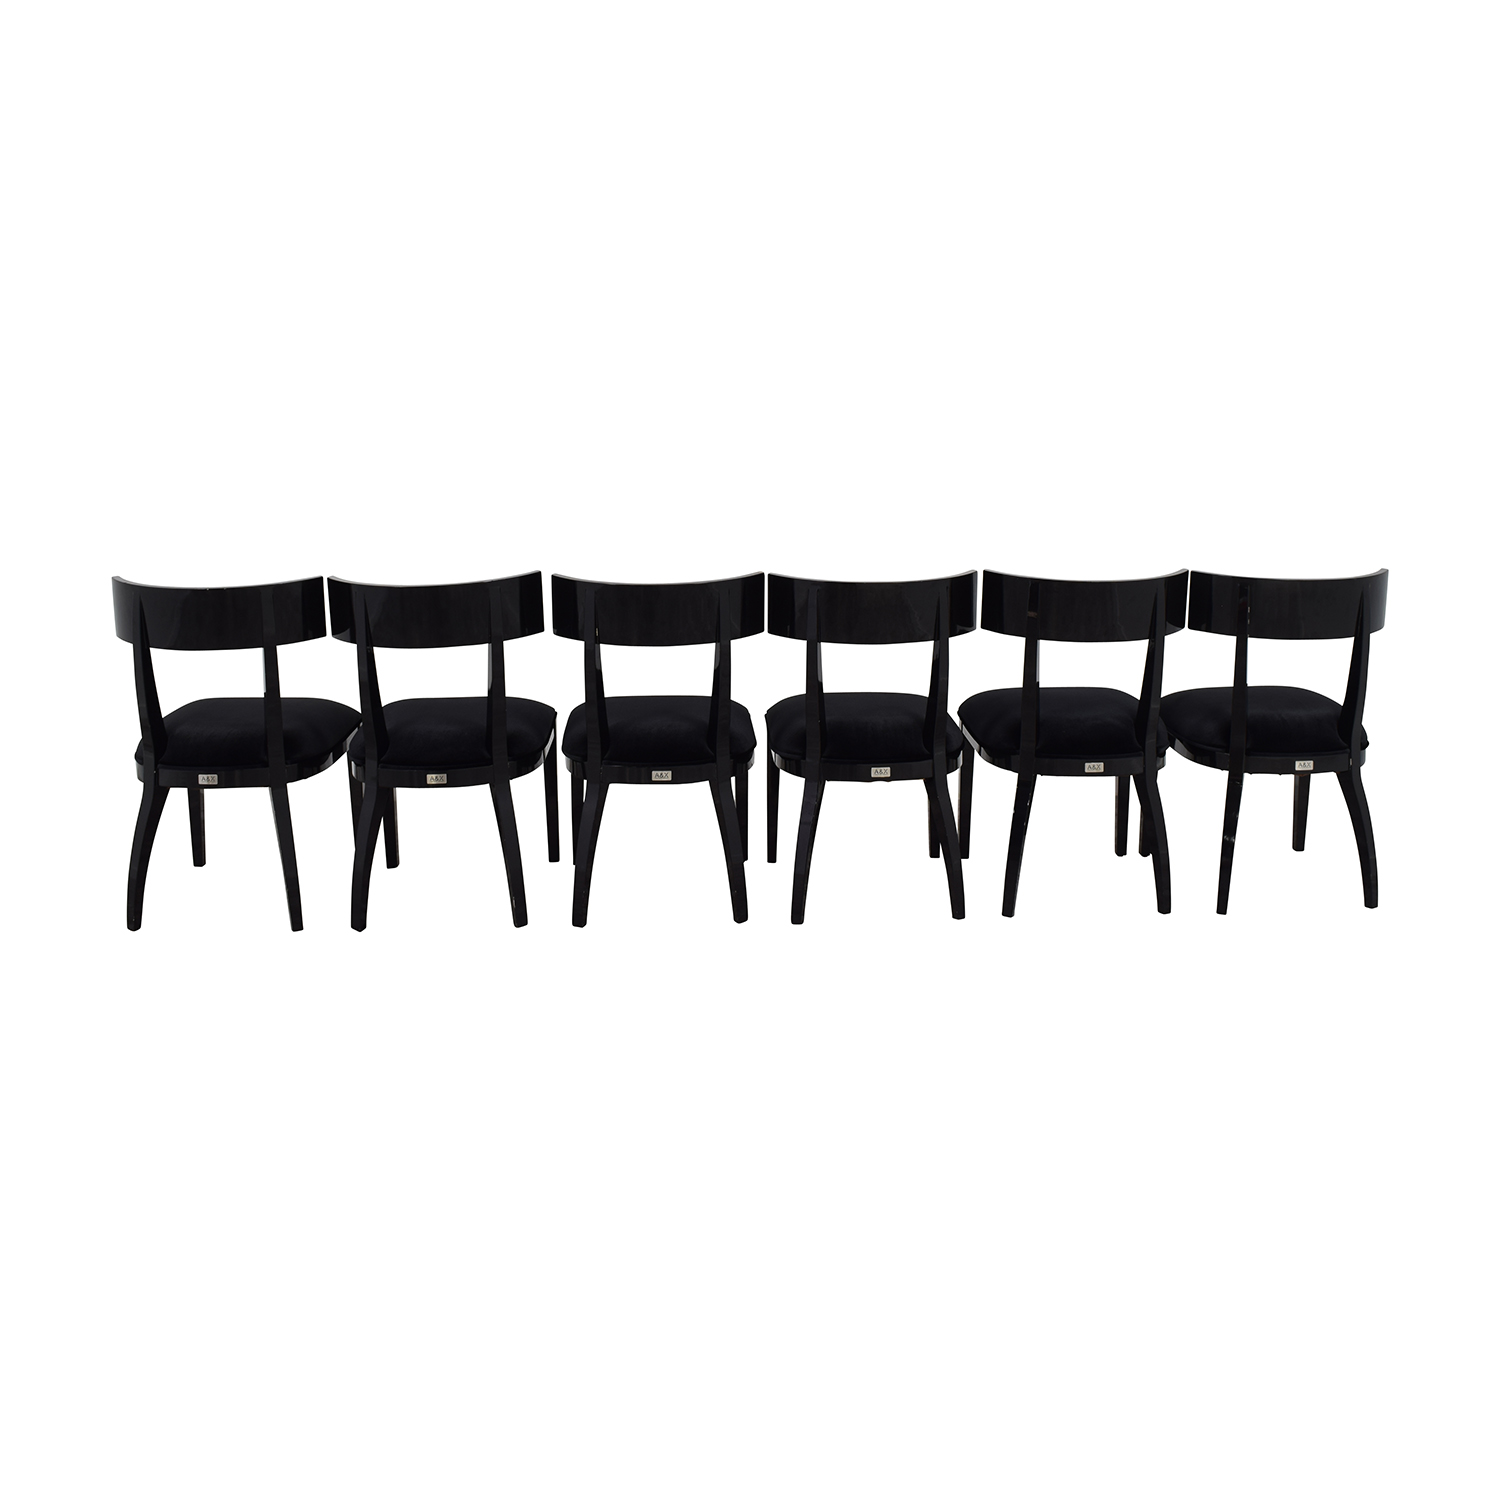 buy Art Deco Black Dining Chairs A & X Casa Luxury Collection Dining Chairs